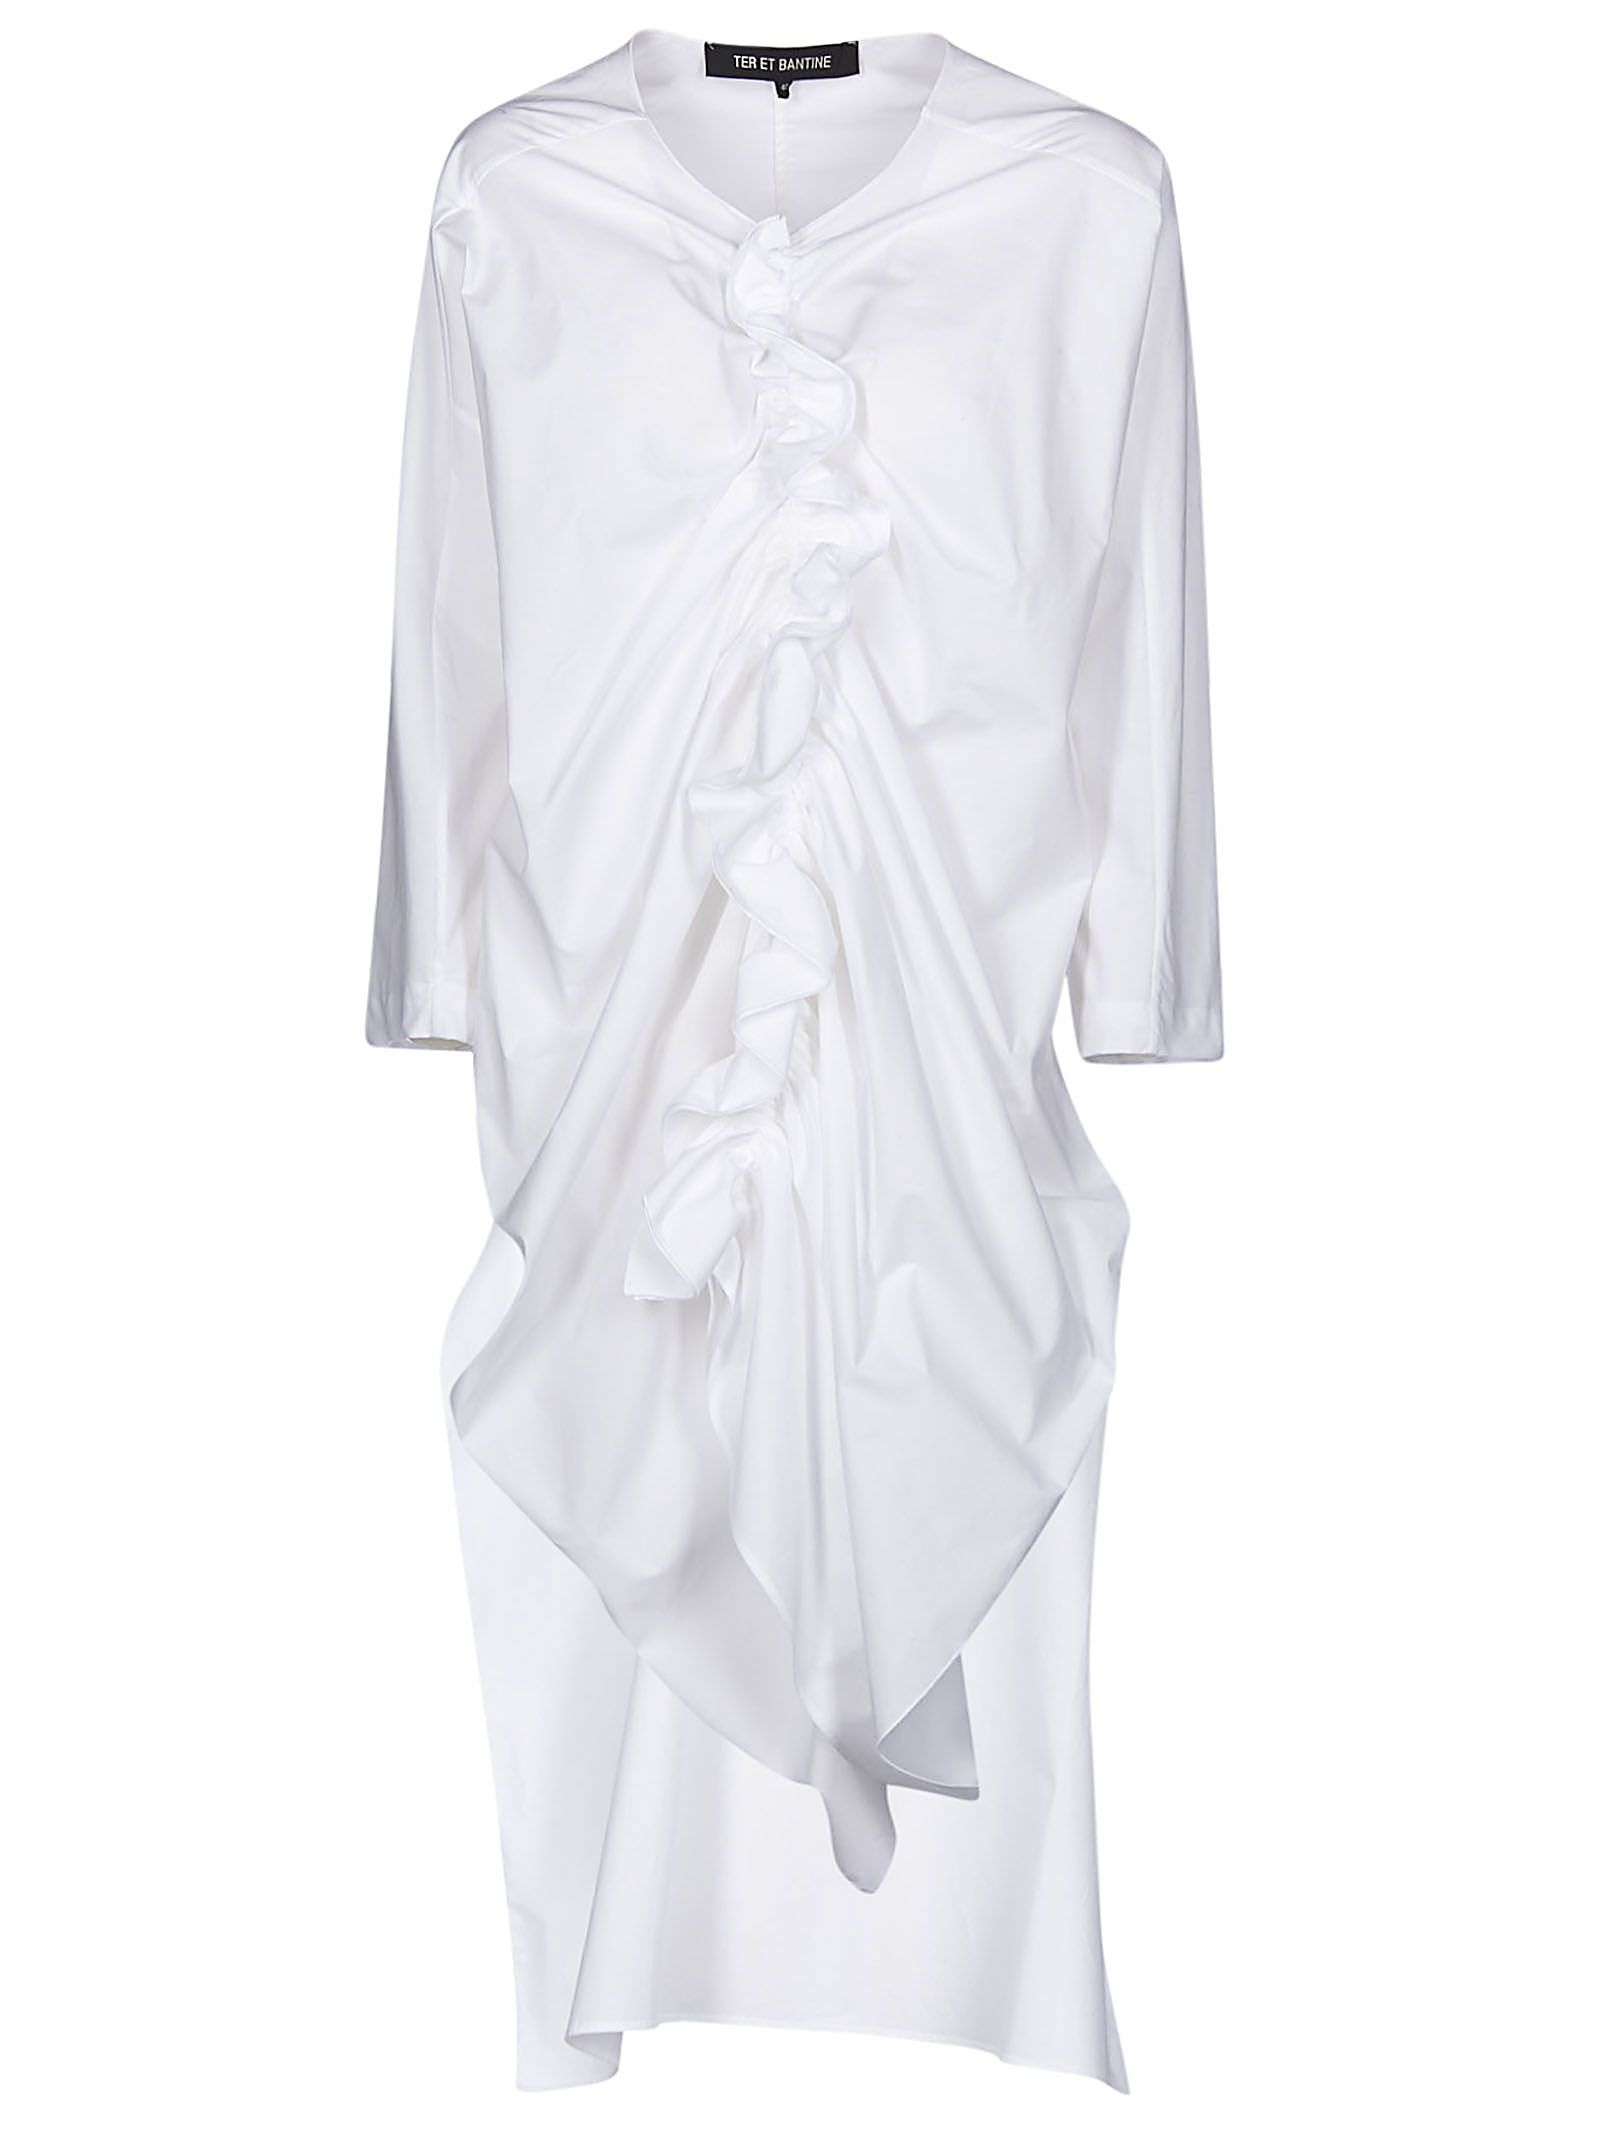 600bbd613fa7b Ter et Bantine Front Ruffle-detailed Long Blouse - White ...